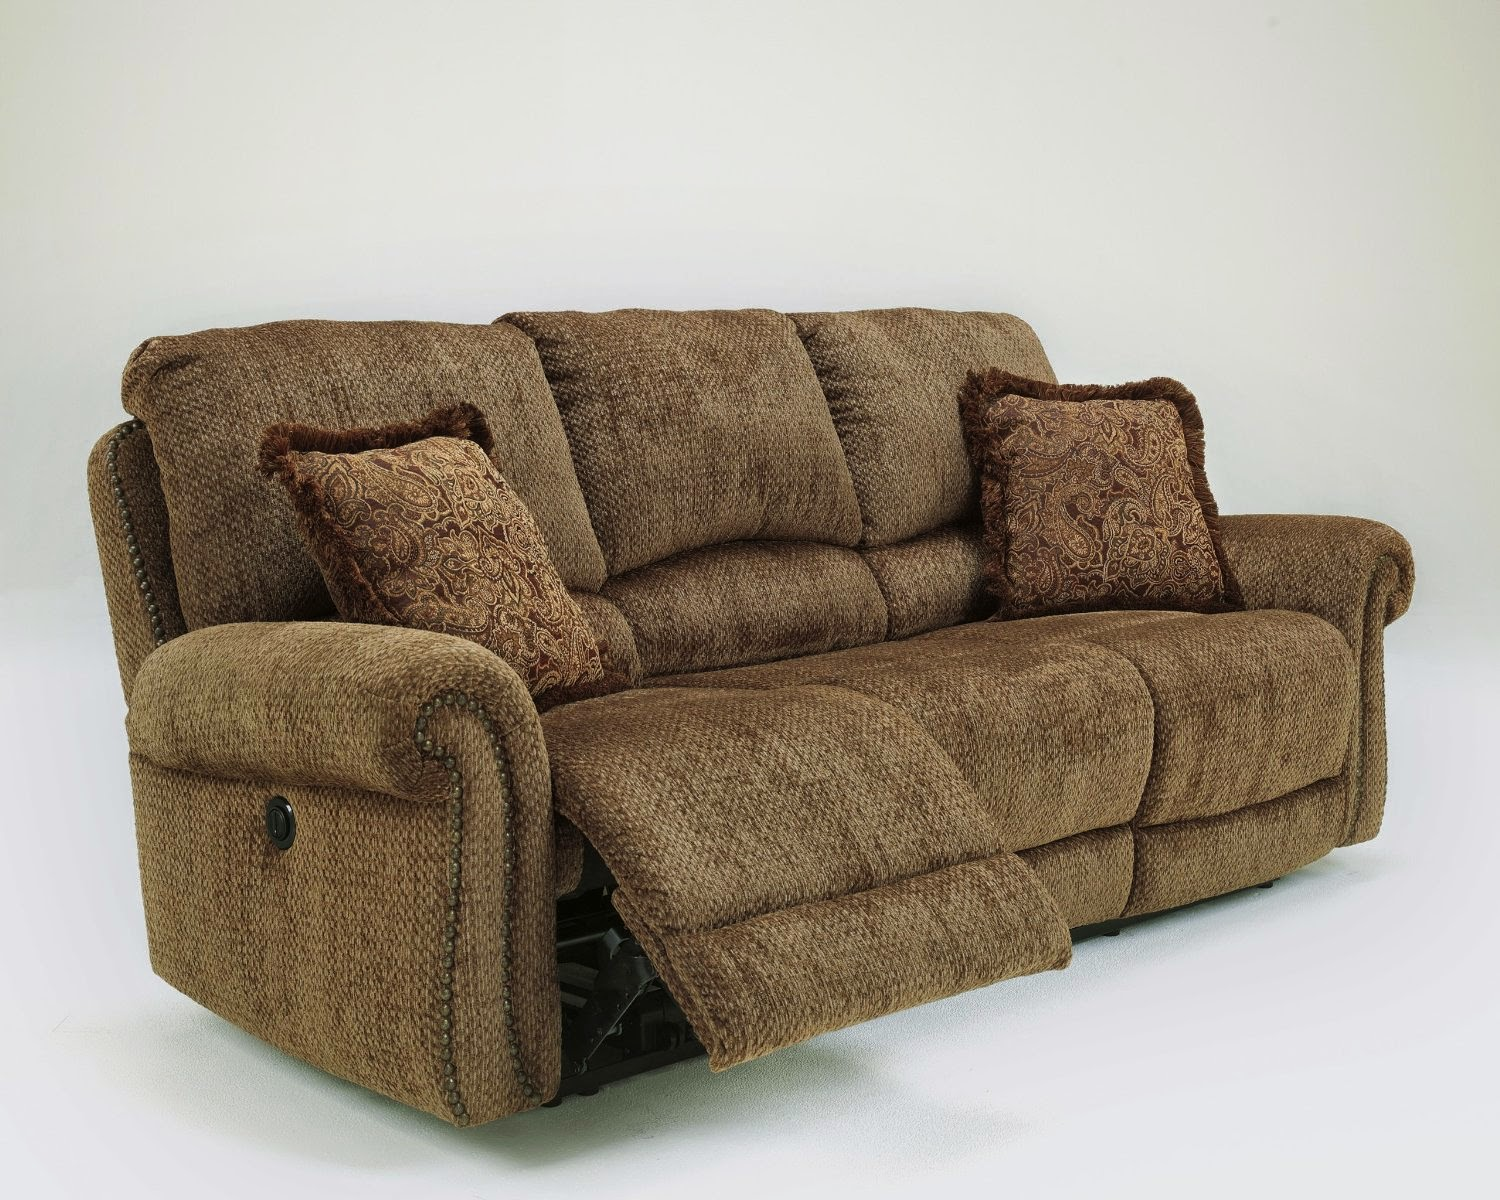 Best Sectional Sofas For The Money Red And Black Sofa Sets Chenille Reclining Catner Harbor Cn